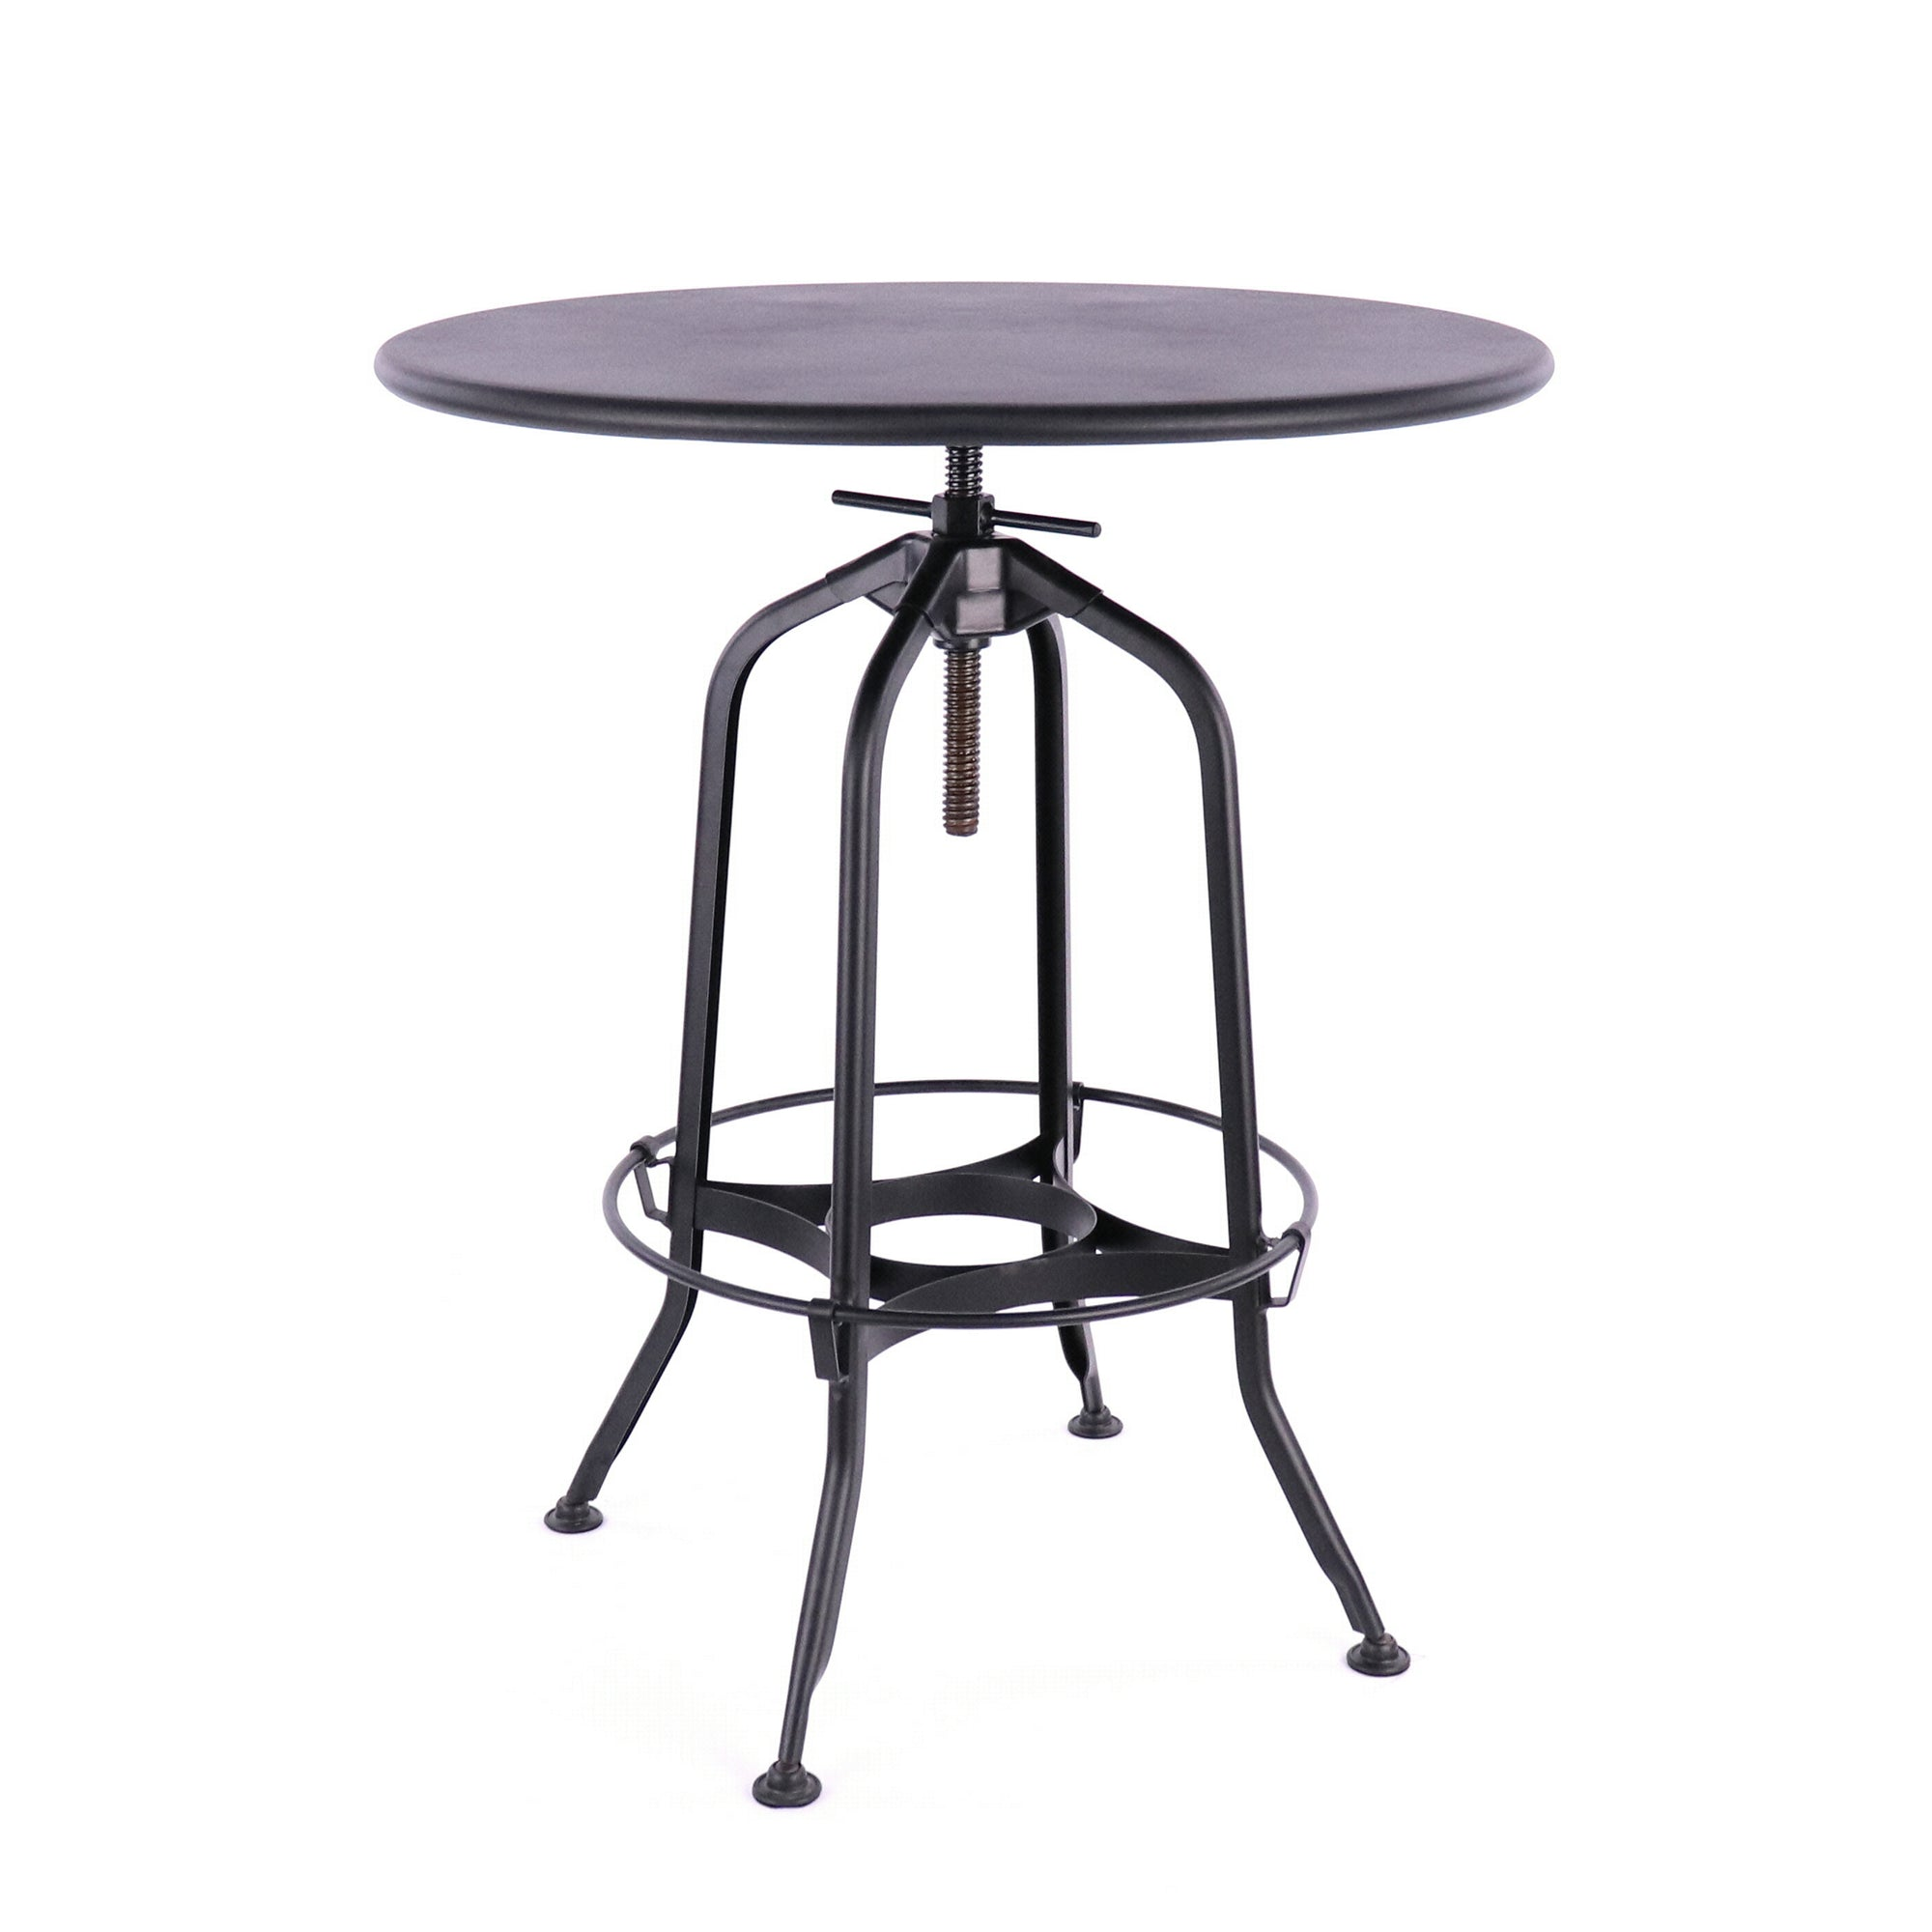 DesignLabMN-Toledo Adjustable Industrial Bar Table-Bar Tables-MODTEMPO